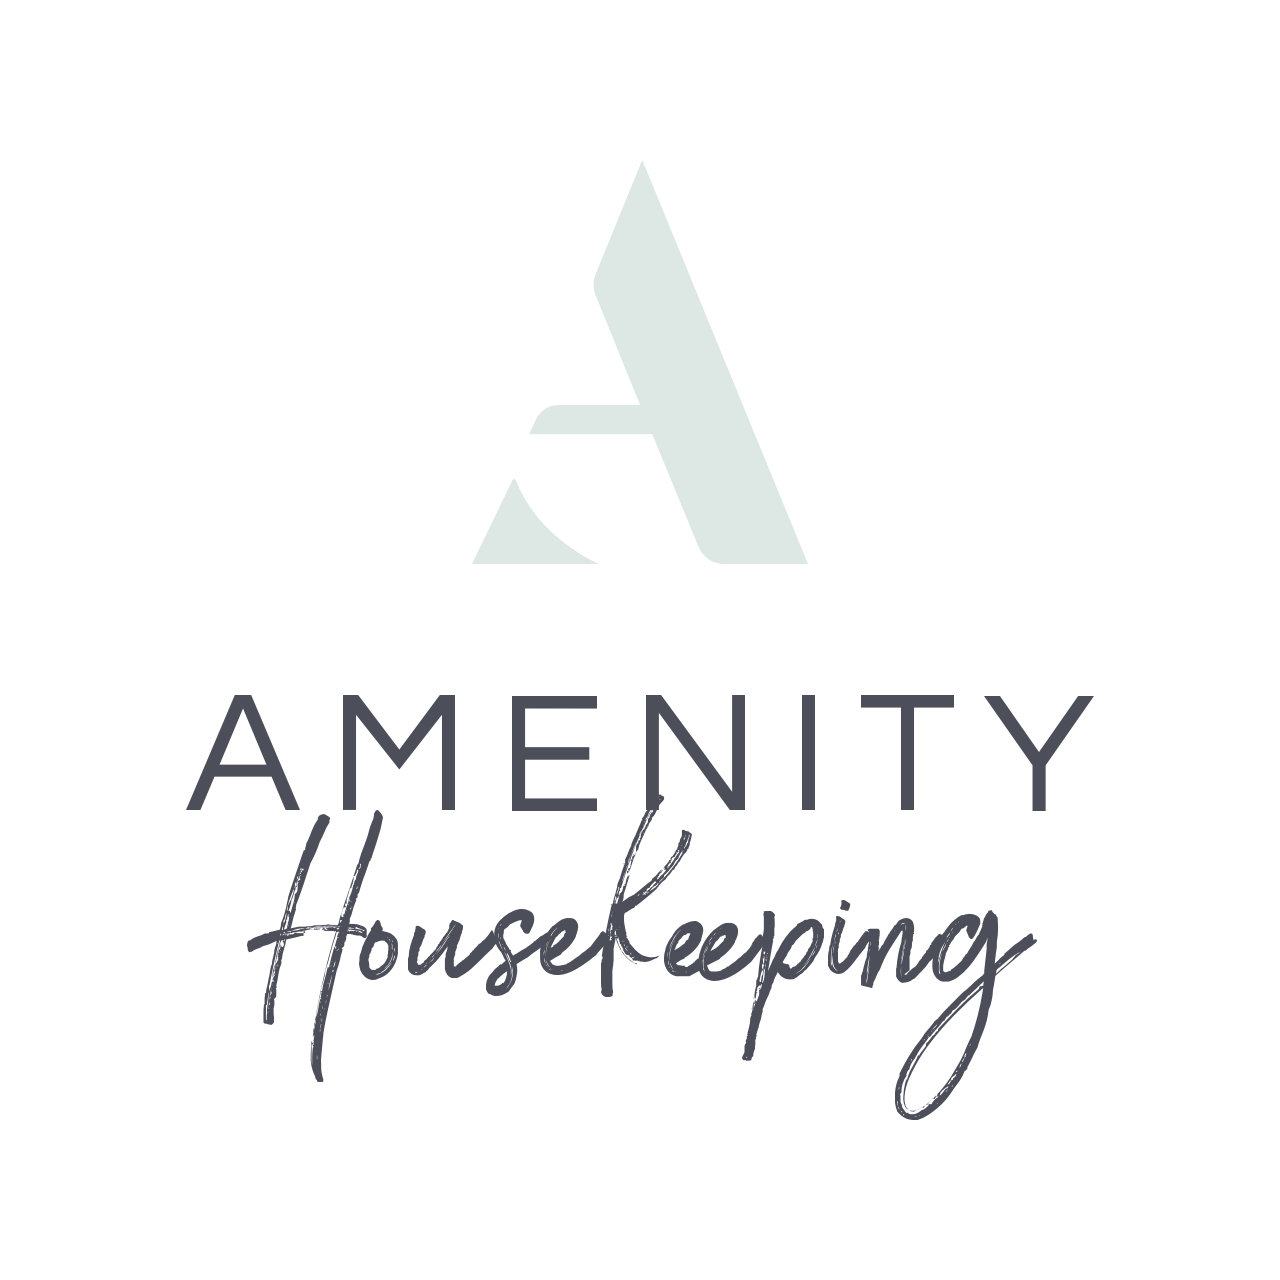 Amenity Housekeeping